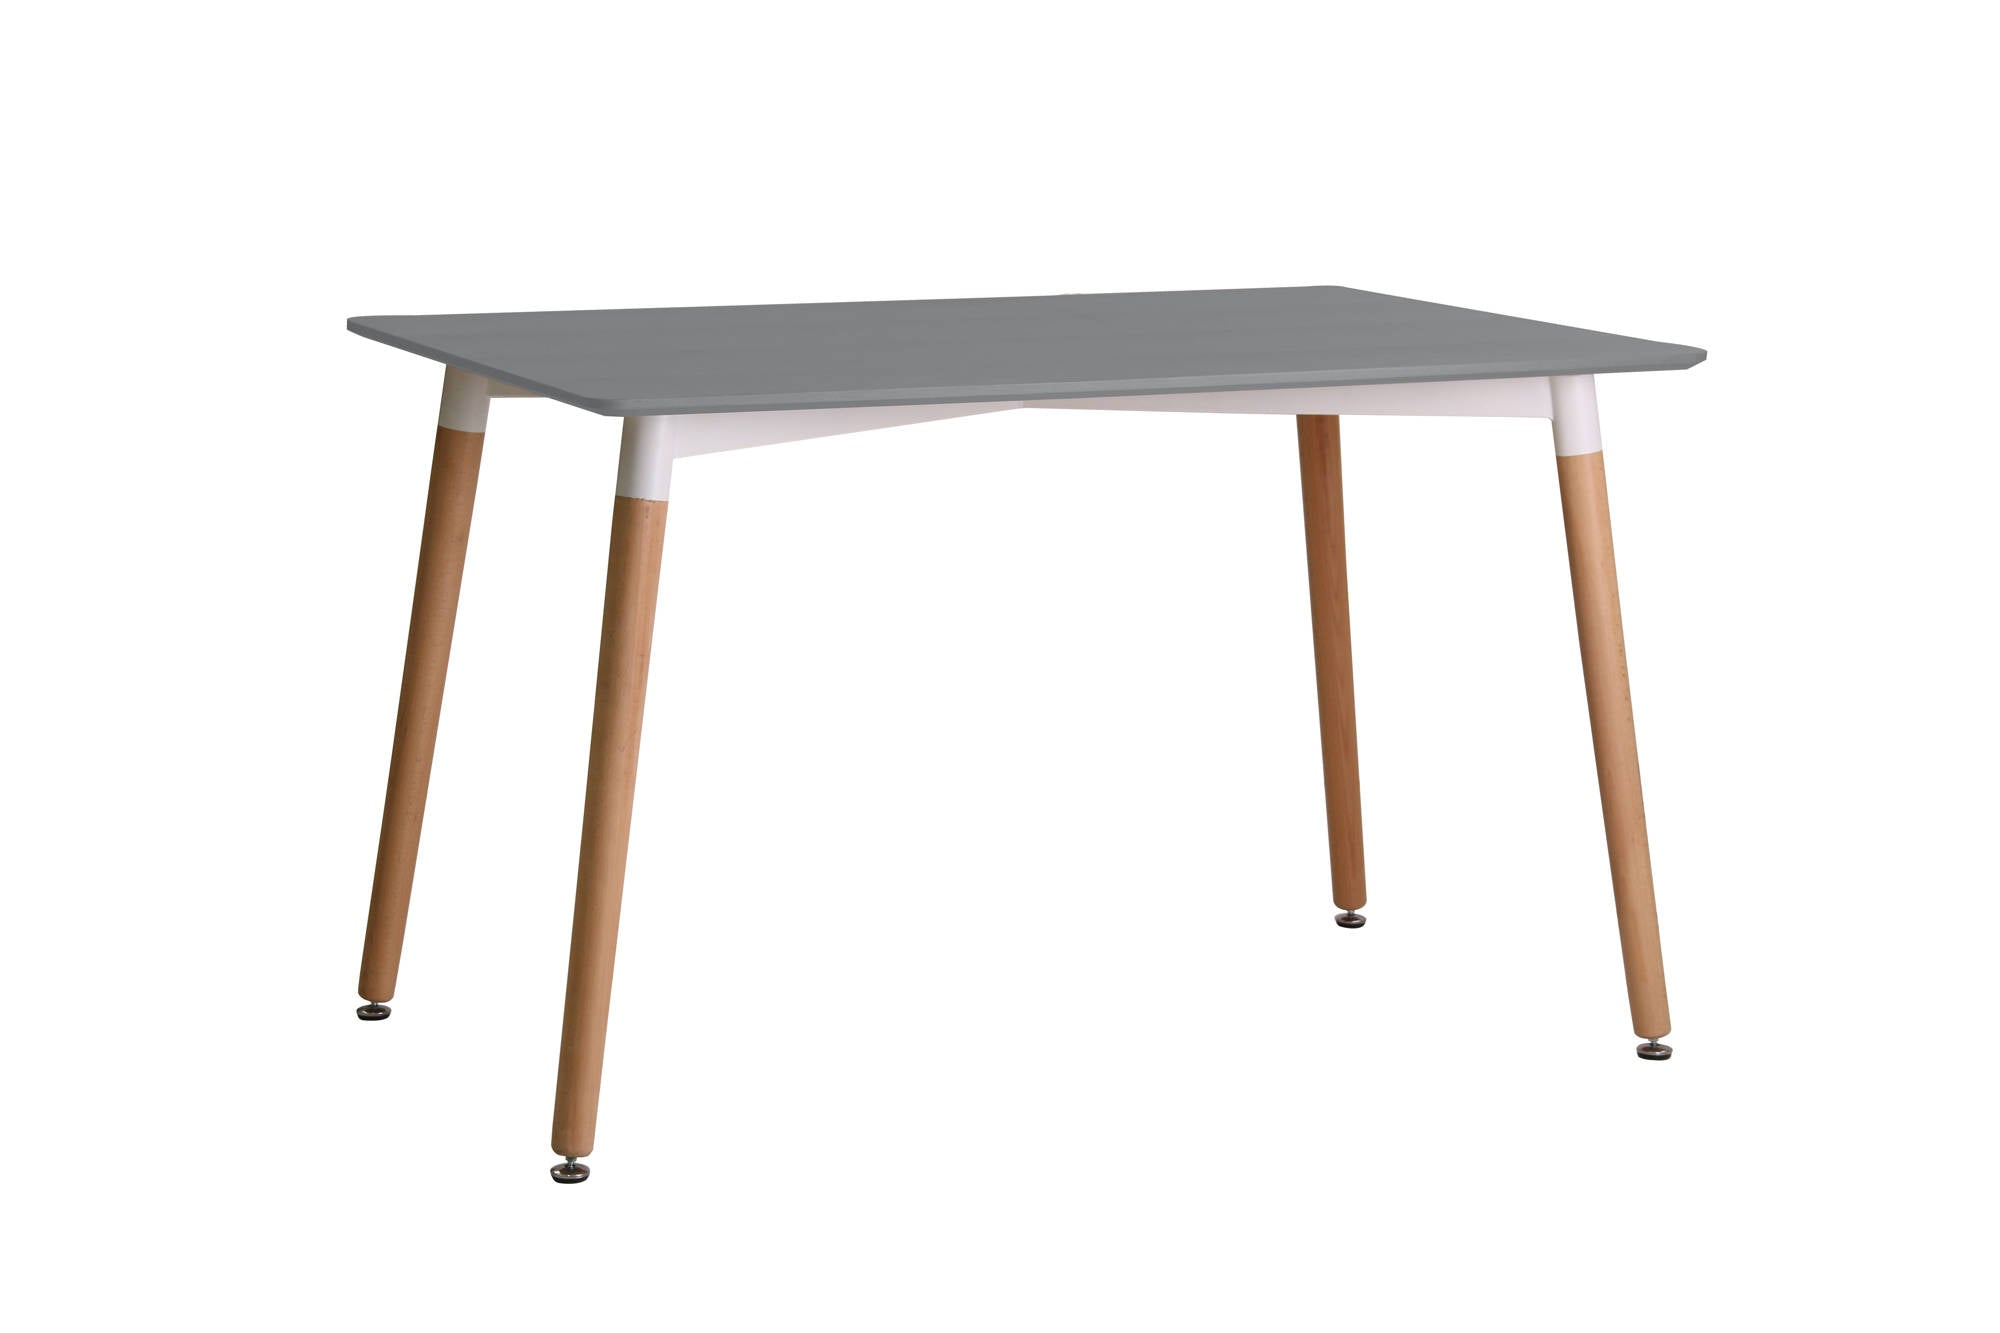 Herning Dining Table in Grey - Ezzo